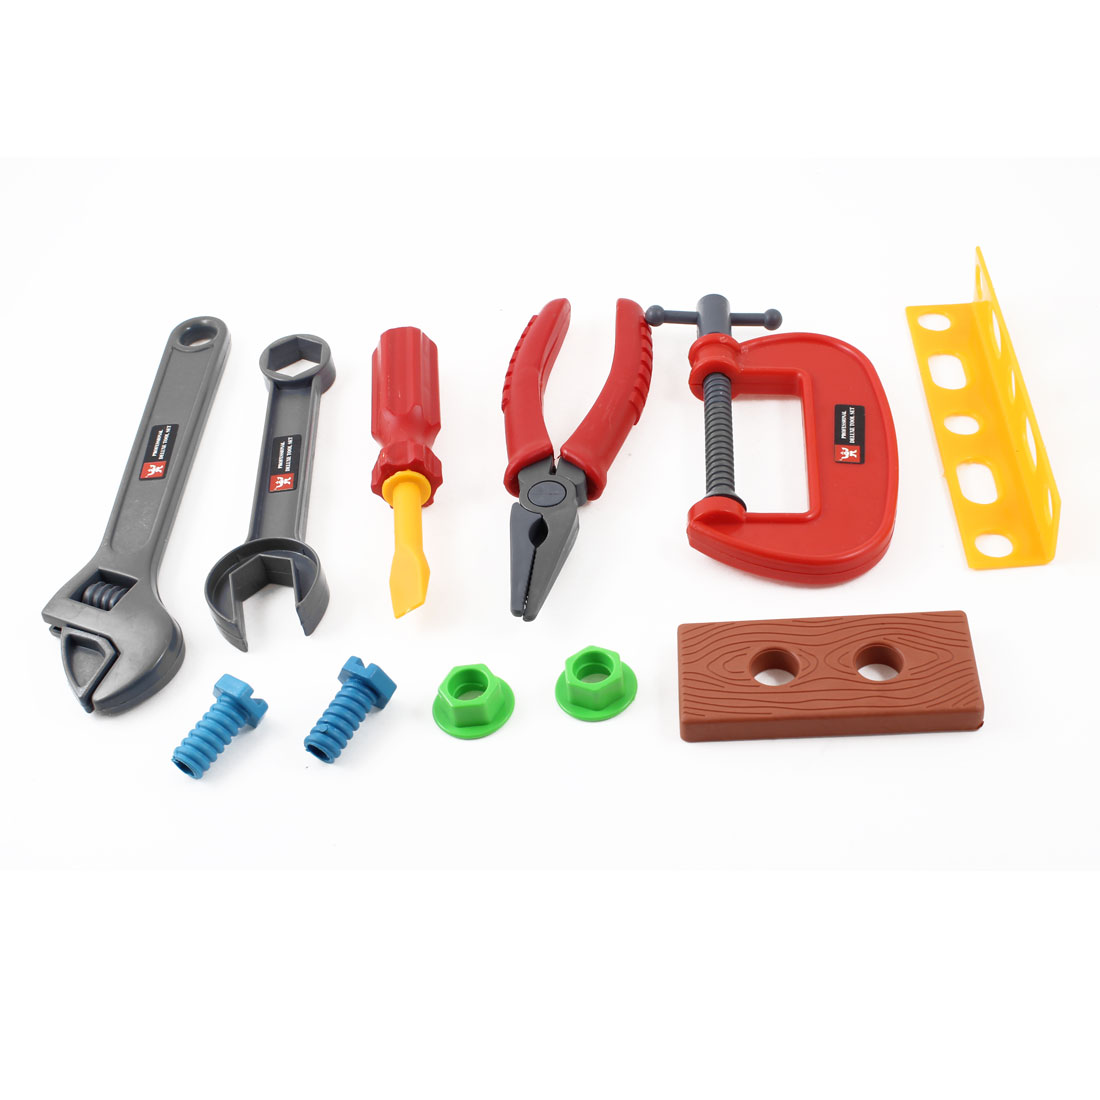 Children Plastic Engineer Device Tool Bench Vice Pliers Play Toy Set Kit 11 in 1